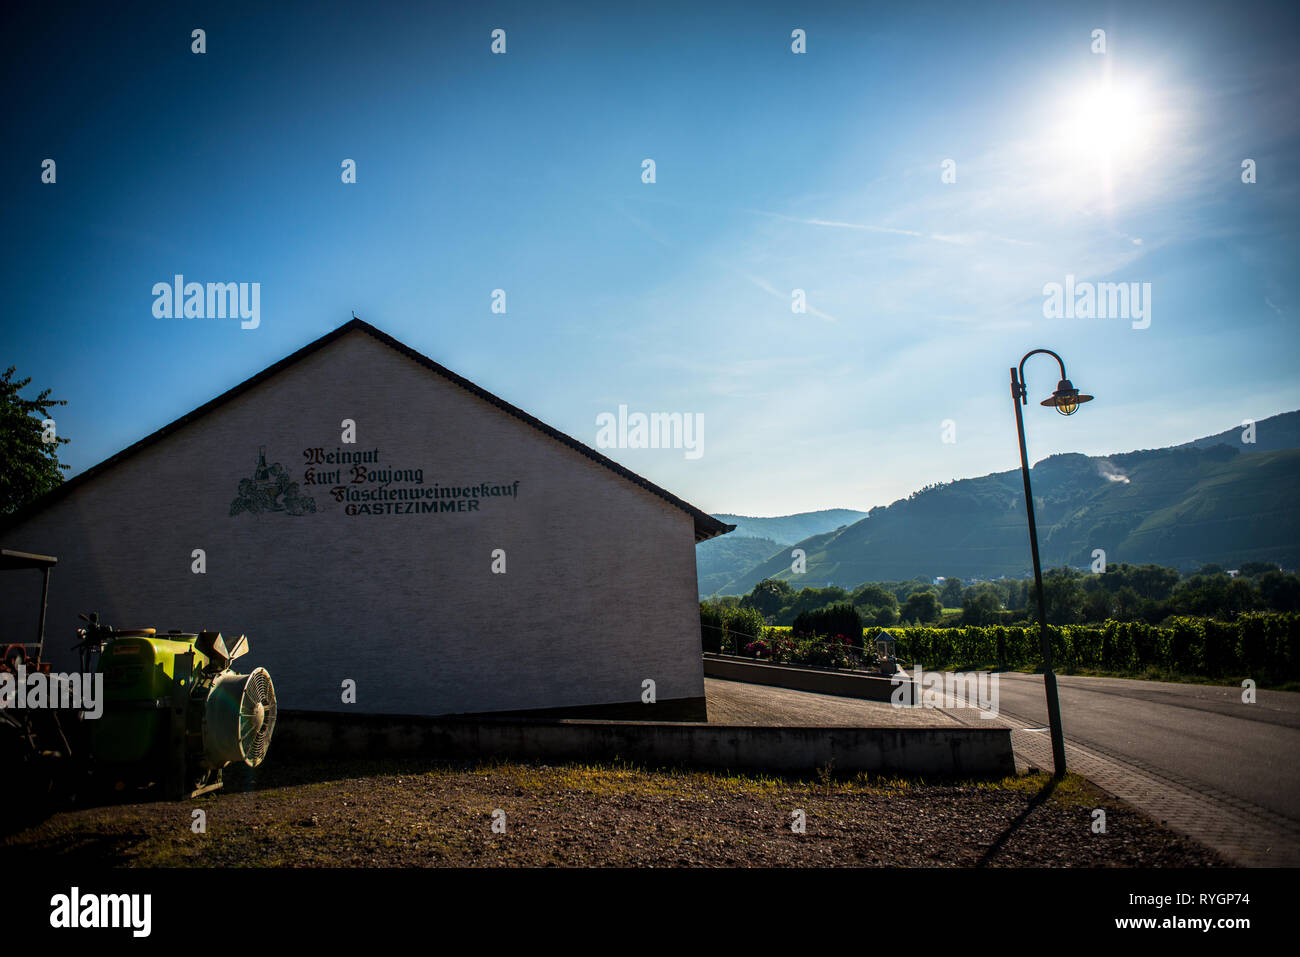 Sunset view near the Braunebreg village, at Mosel river, Germany - Stock Image